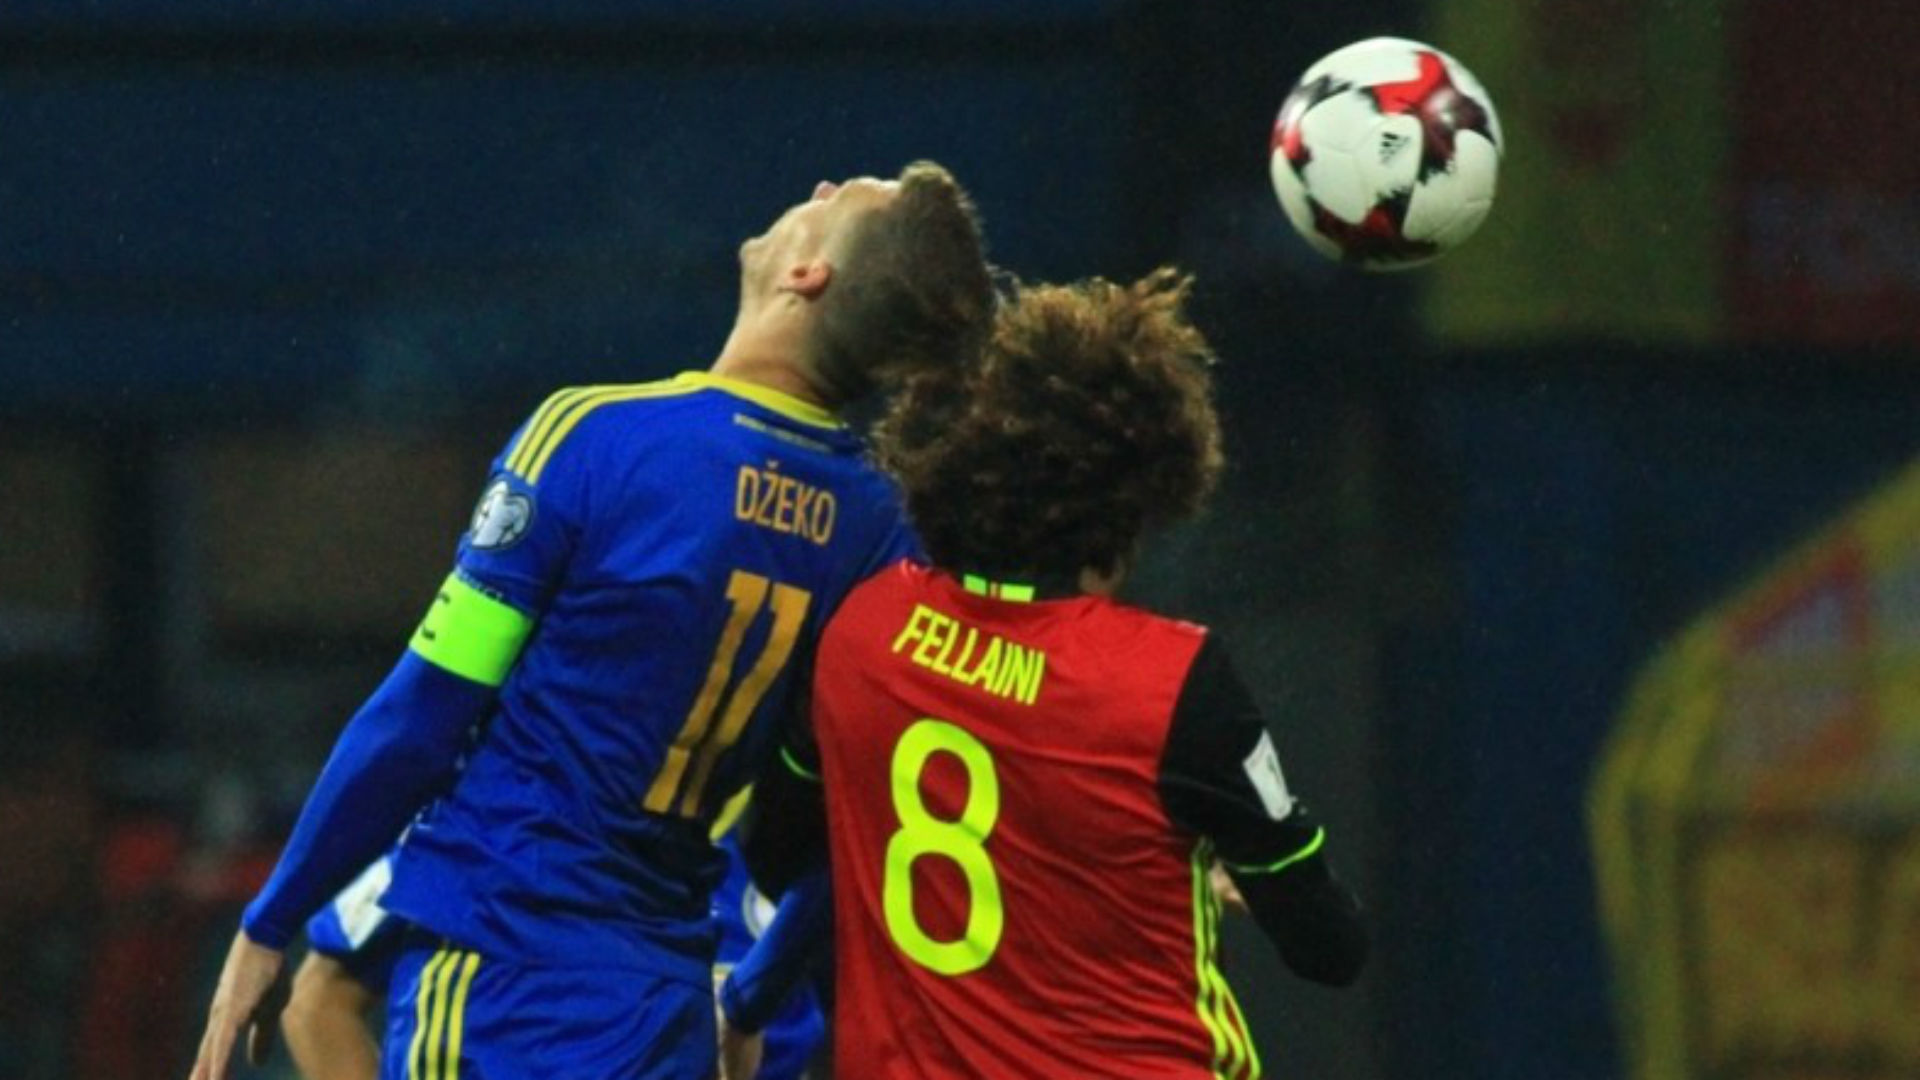 Bosnia Belgium WC Qualification Dzeko Fellaini